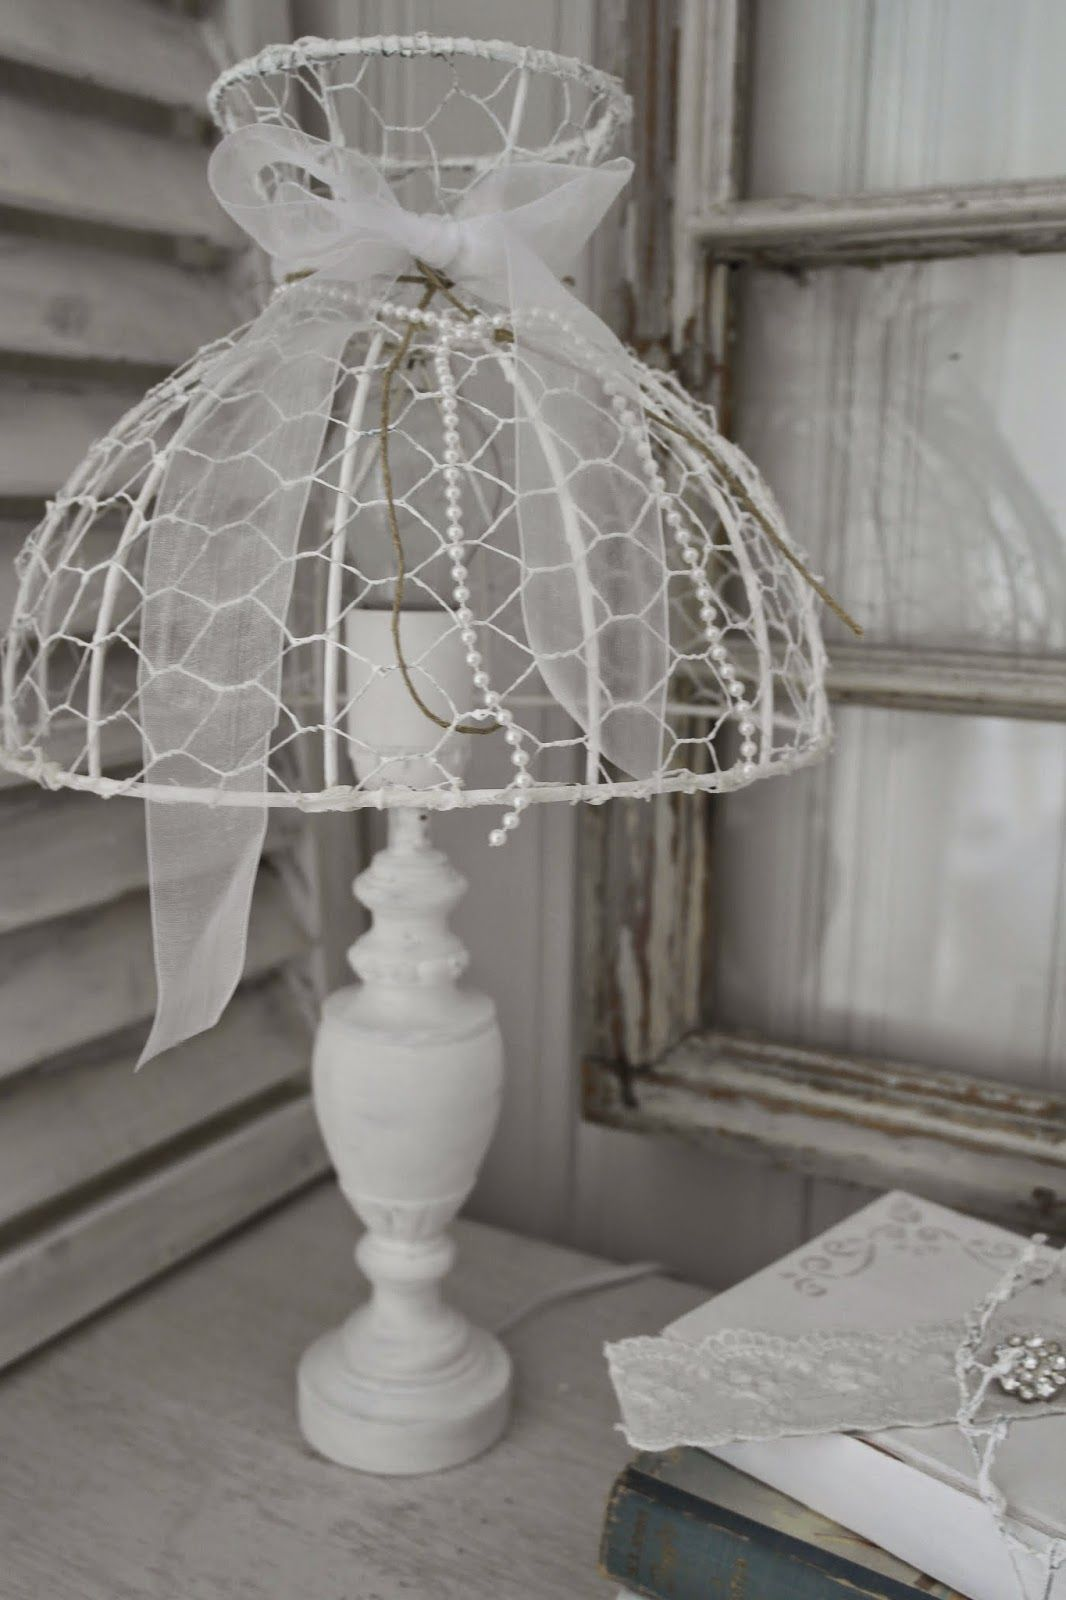 Lampshade made of chicken wire | Lampshades | Pinterest | Chicken ...